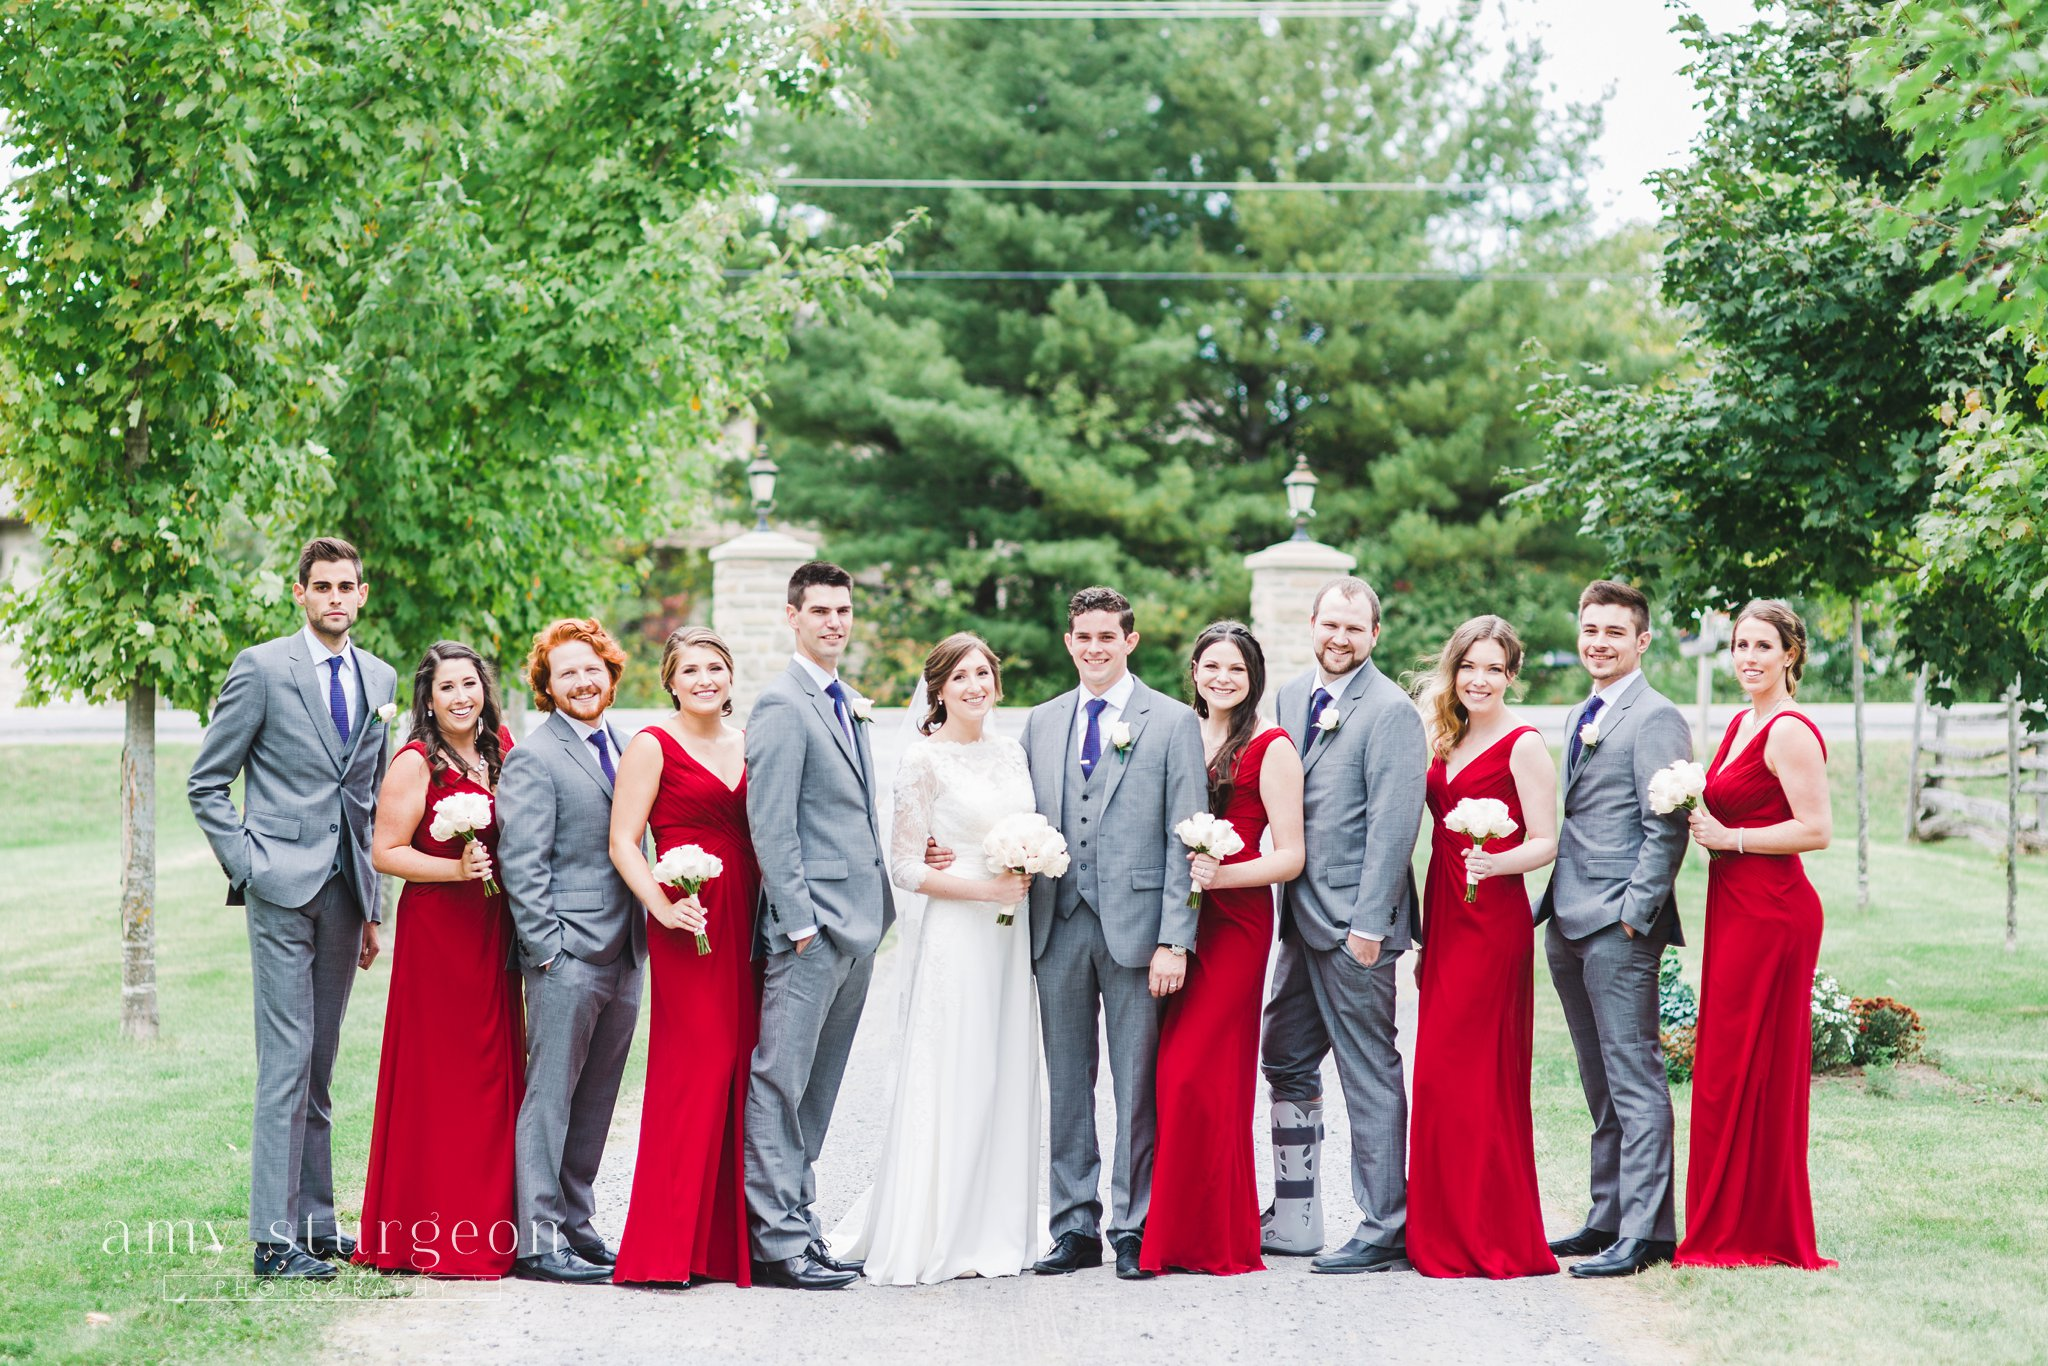 Red bridesmaids dress with grey suits looks great together at the alpaca farm wedding